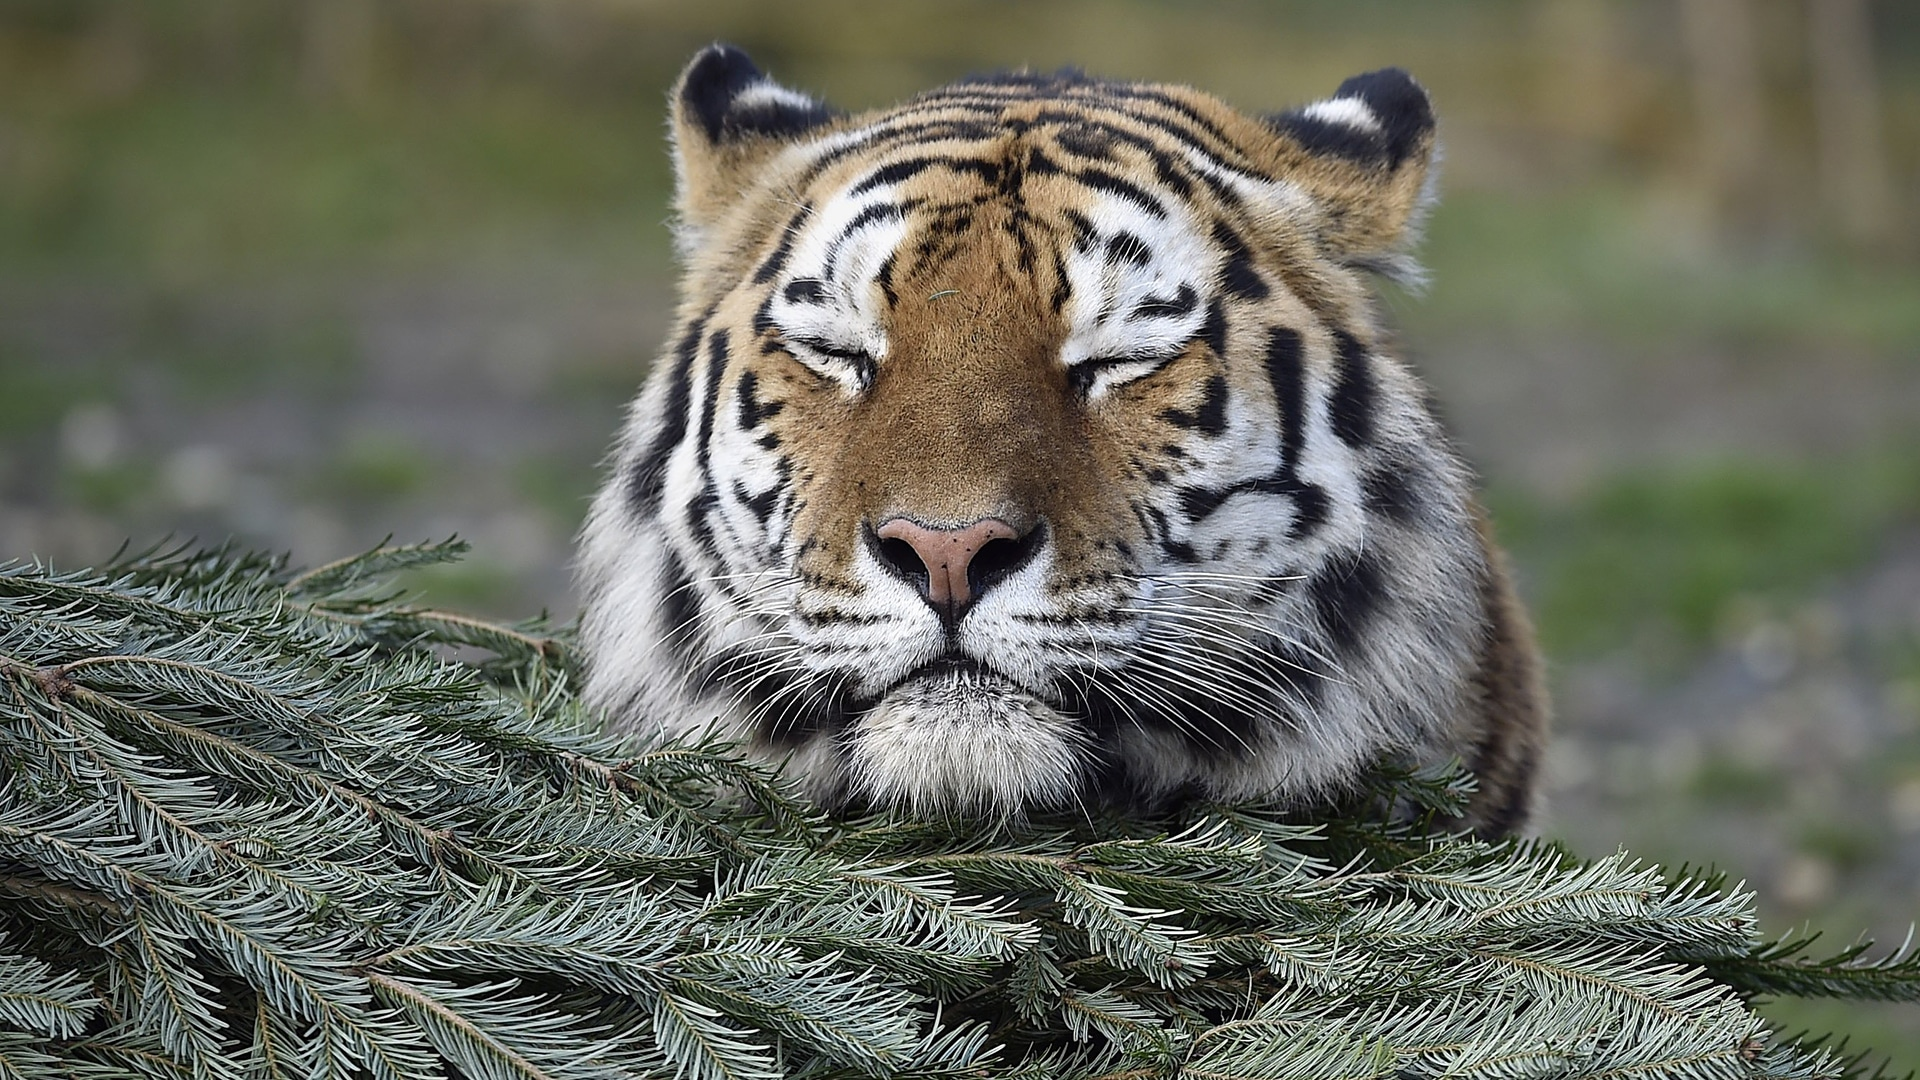 A tiger rests on a Christmas tree at the zoo in Gelsenkirchen, Germany, on the day before Christmas Eve December 23rd, 2015.